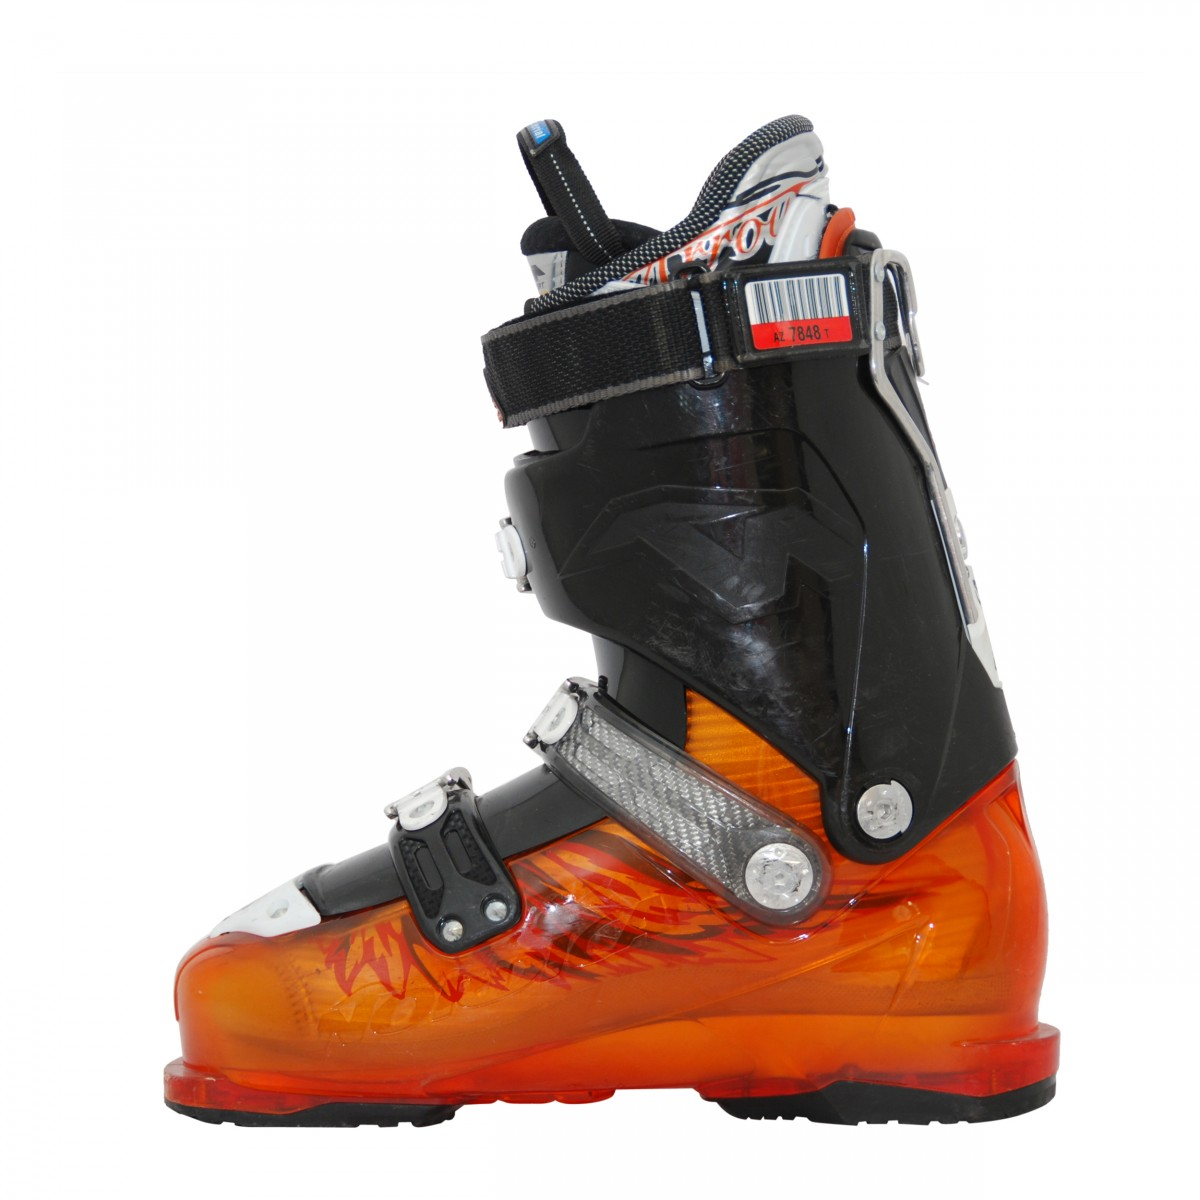 Chaussure-de-Ski-Occasion-Nordica-Firearrow-F4-noir-orange miniature 4